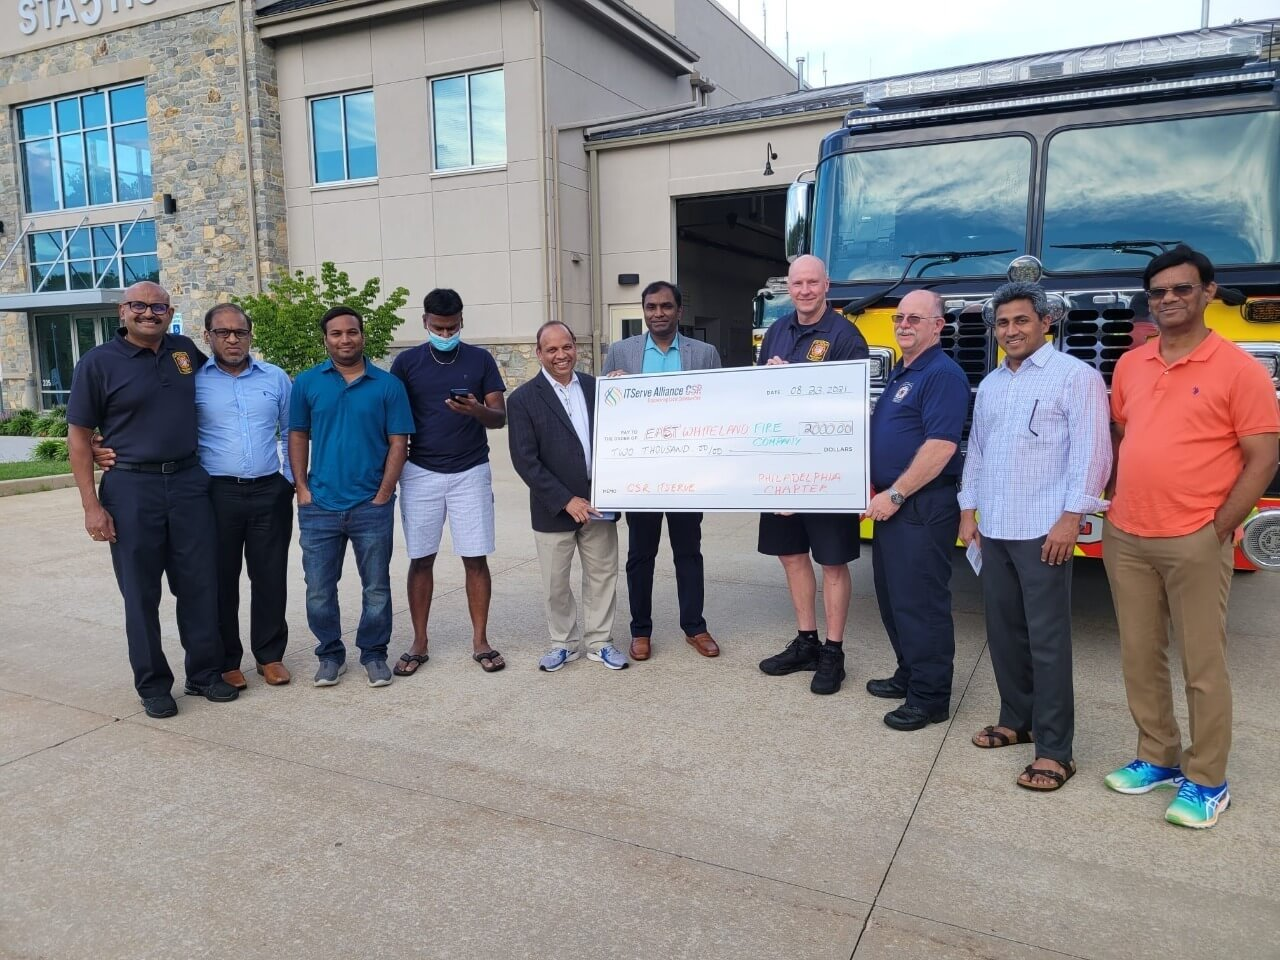 Team Philadelphia Donated $2000 to East Whiteland Fire Company as part of Q3 CSR Activity